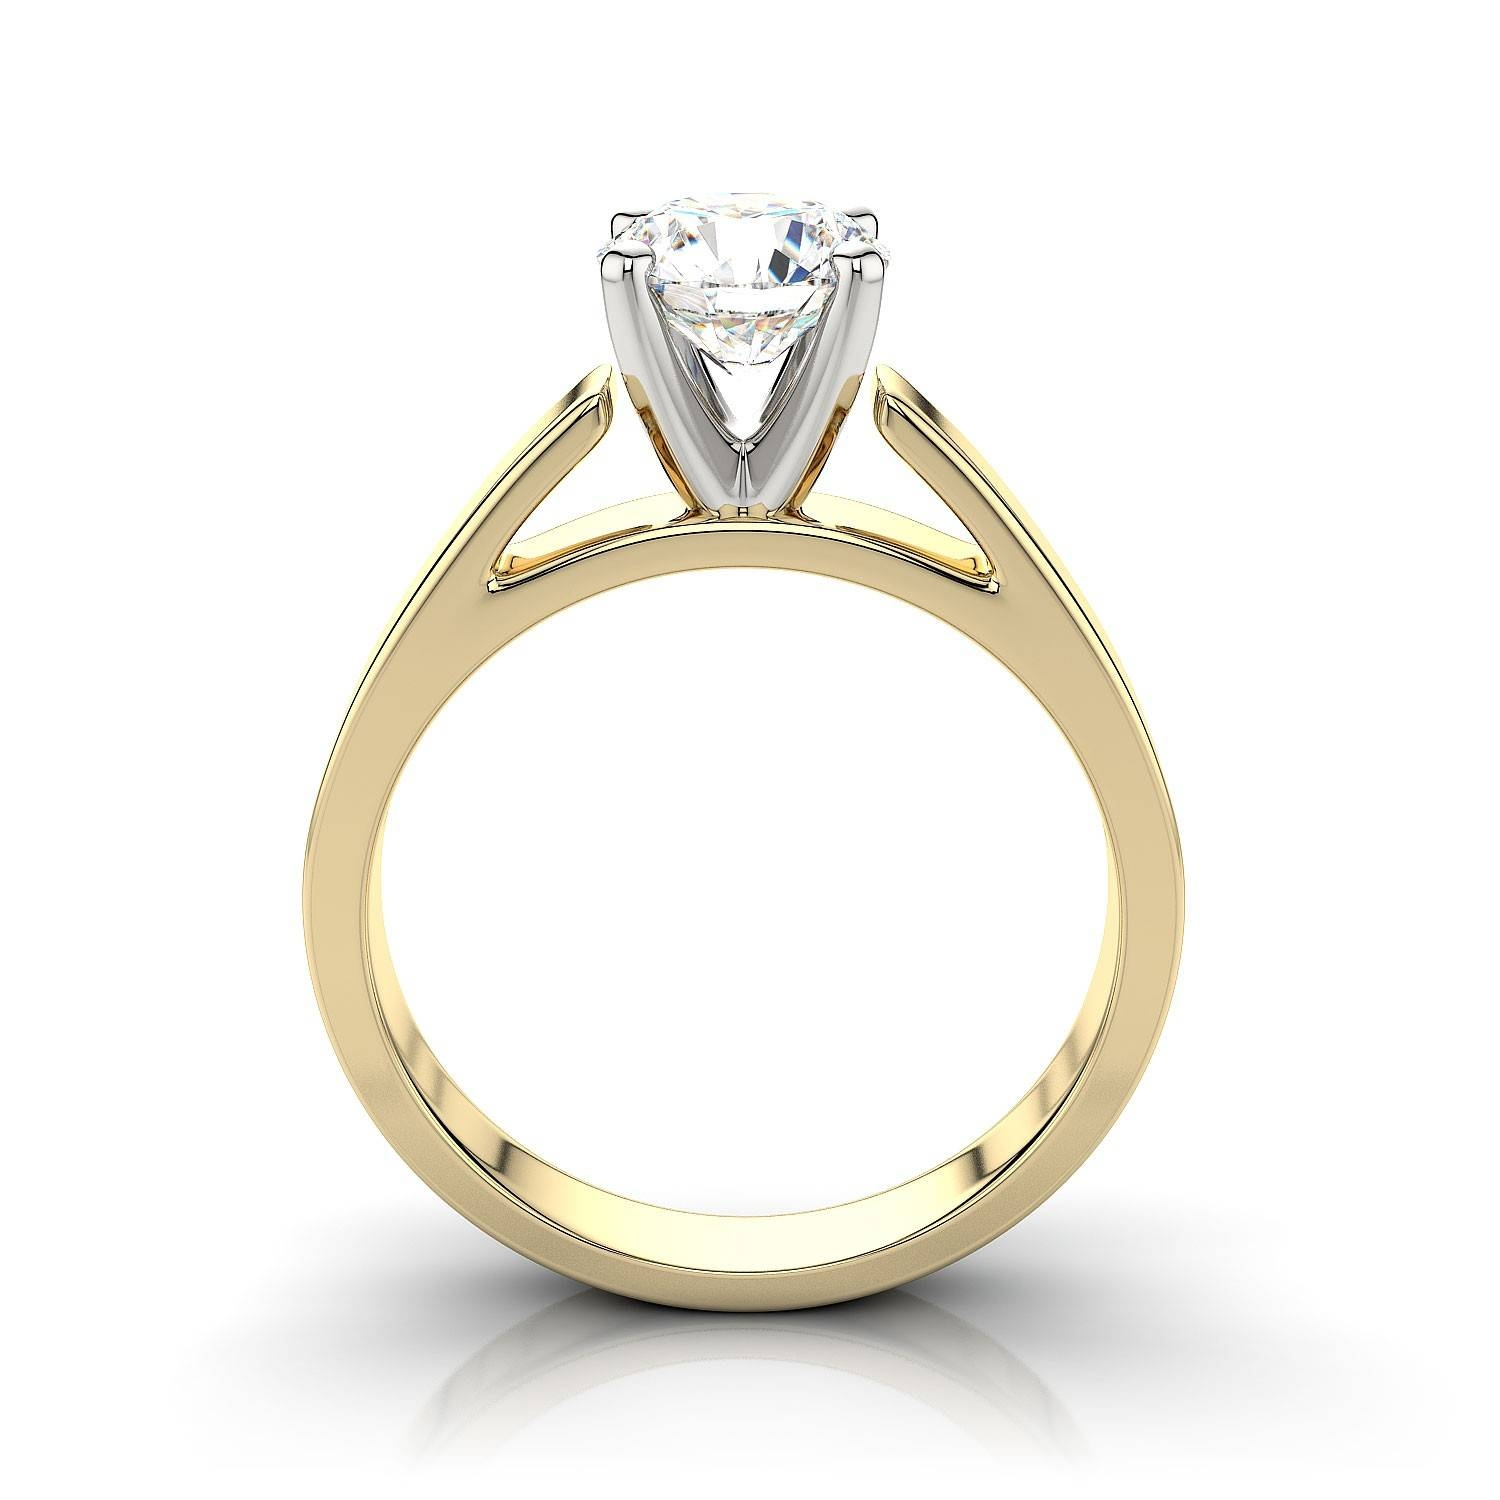 Tapered Cathedral Solitaire Engagement Ring – 18k Yellow Gold Intended For Diamond Wedding Rings Settings (View 11 of 15)